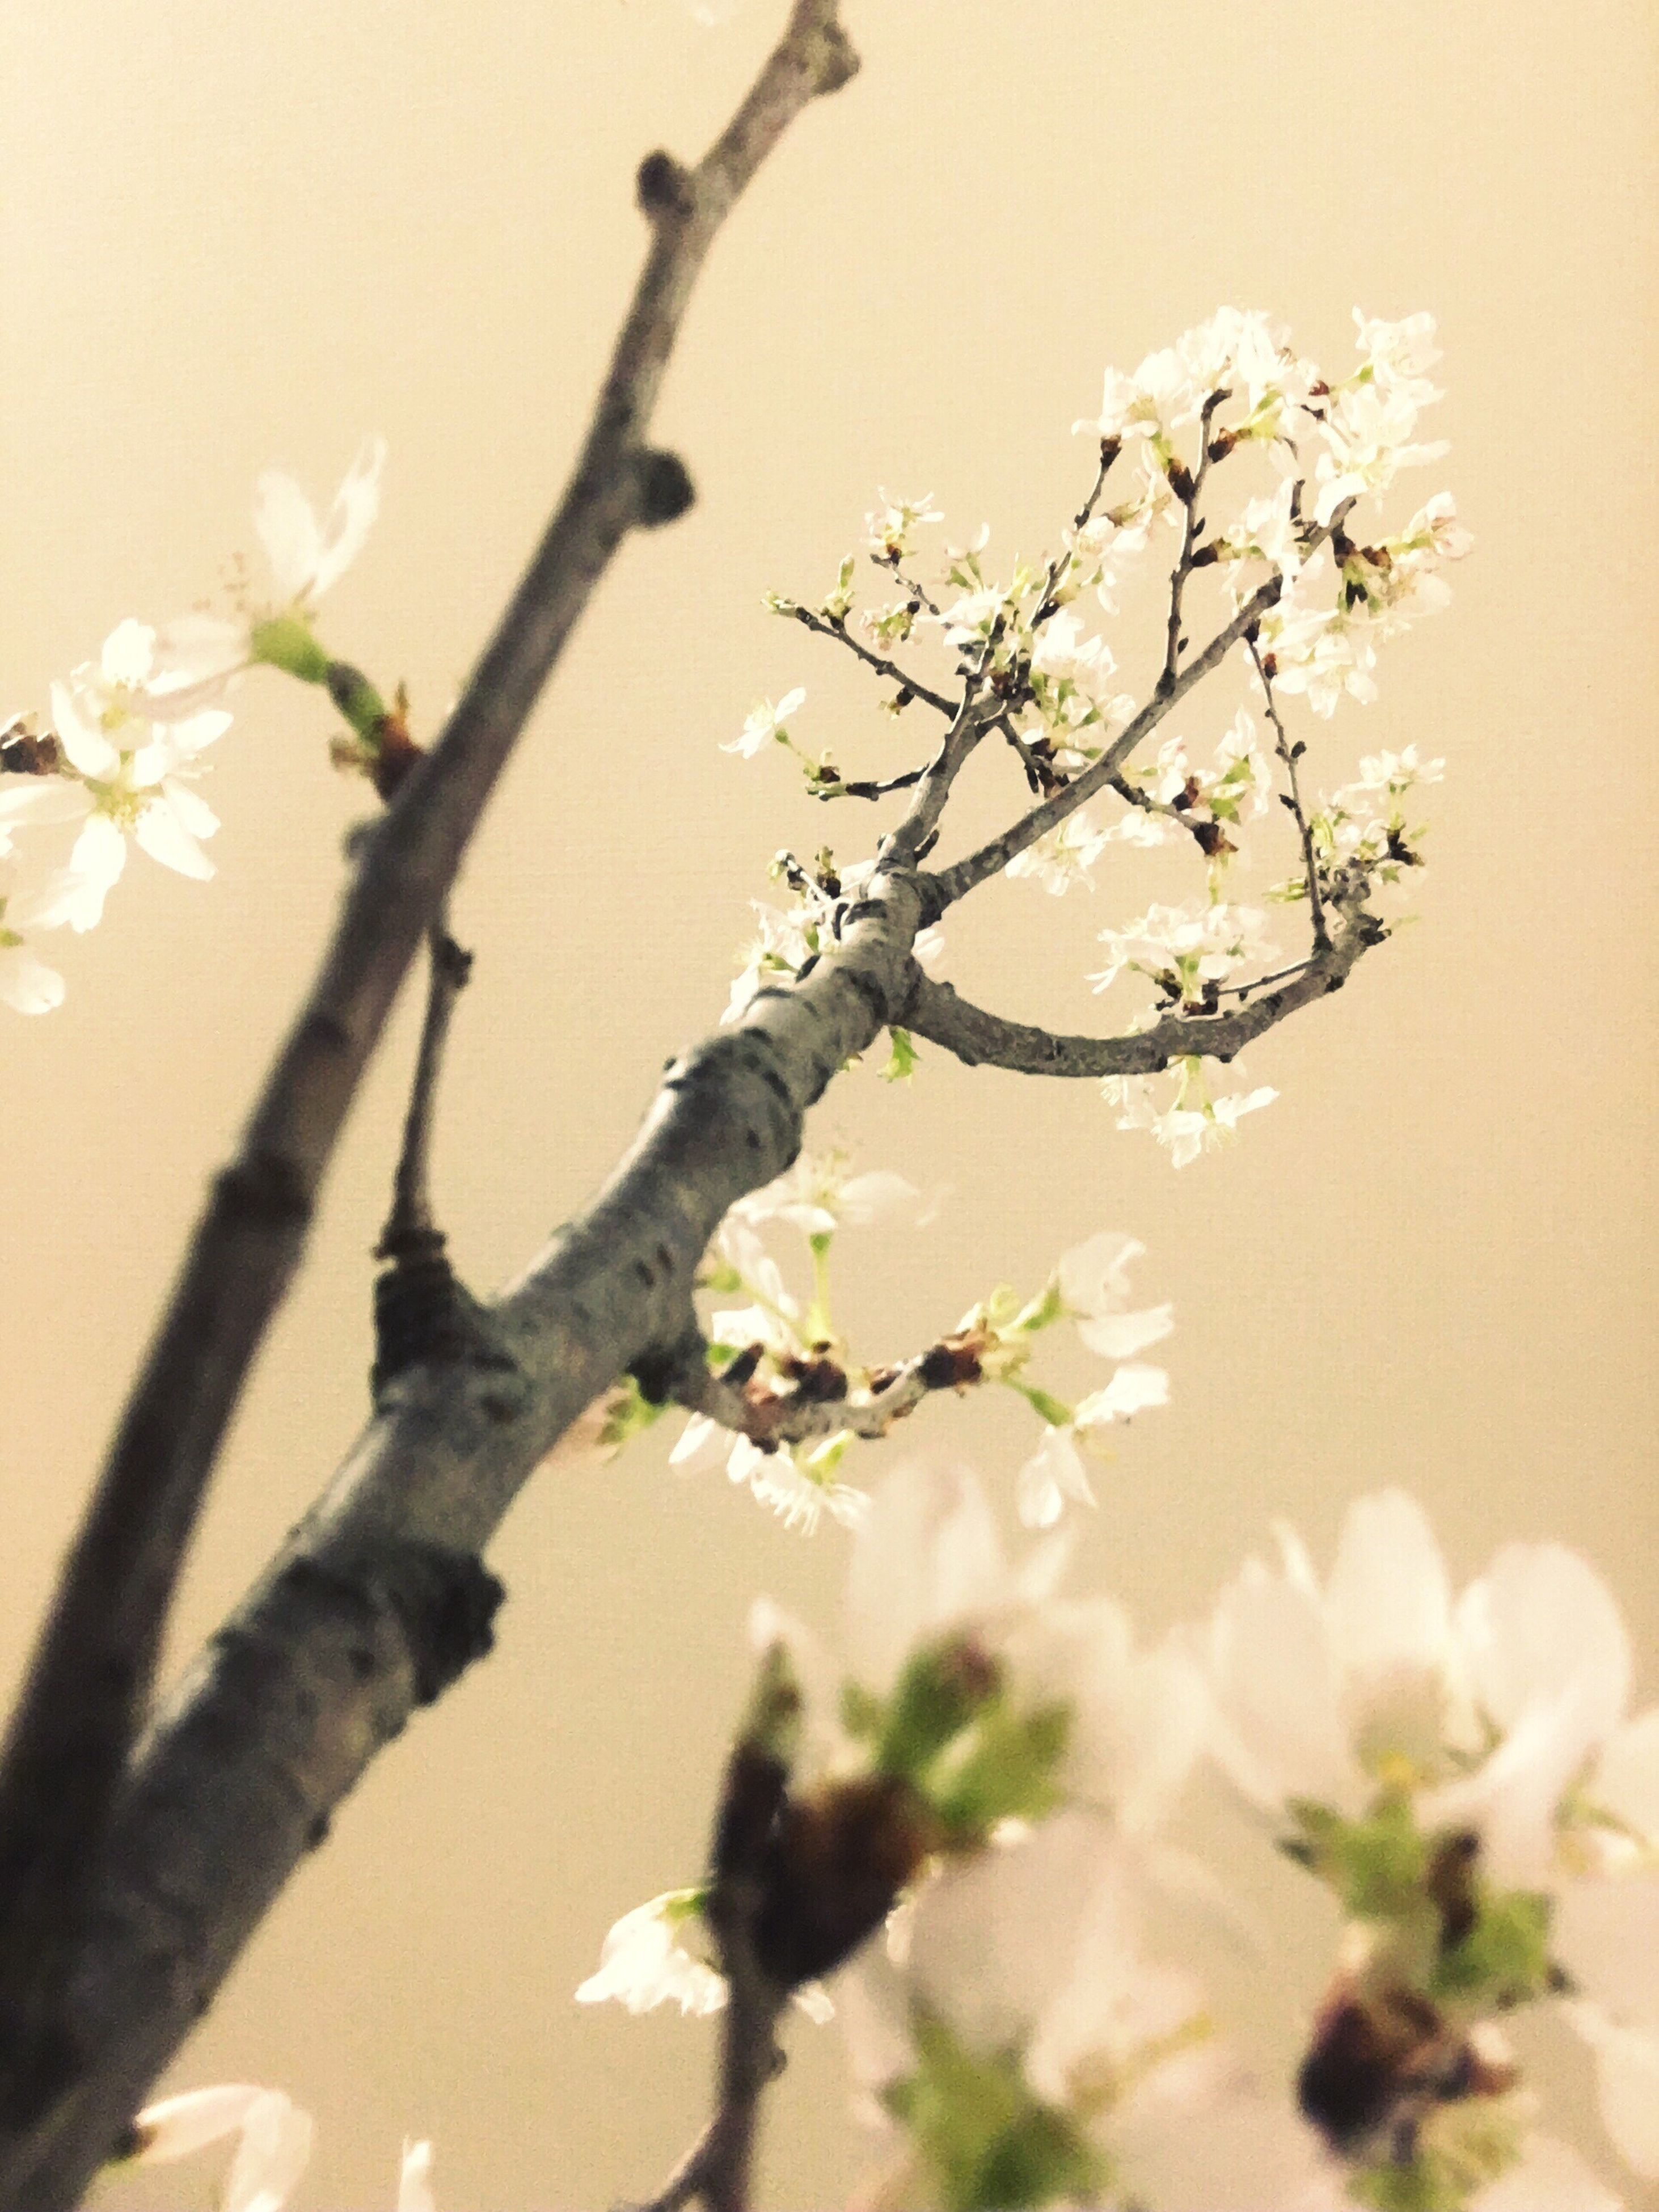 growth, nature, flower, beauty in nature, springtime, tree, blossom, branch, sunlight, no people, plant, fragility, freshness, twig, close-up, sky, outdoors, day, willow tree, flower head